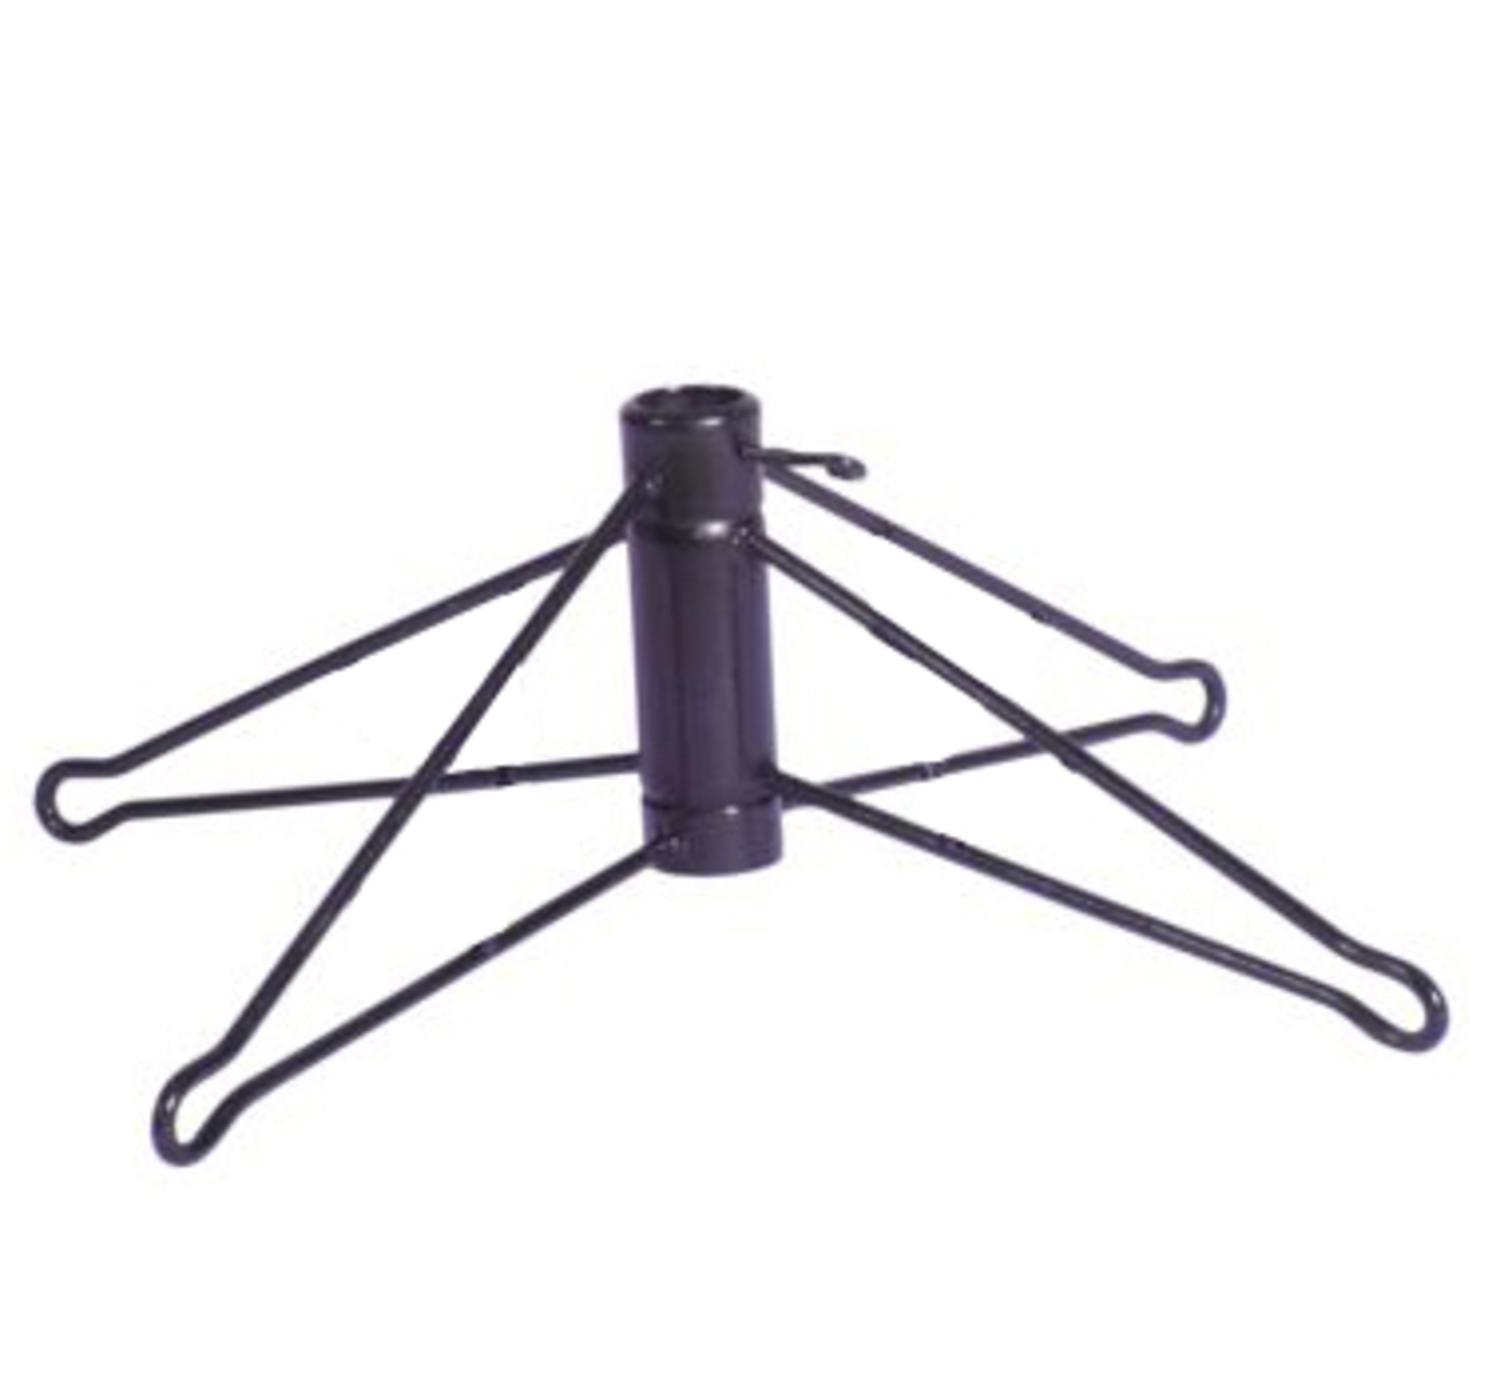 Artificial Christmas Tree Stand.Black Metal Christmas Tree Stand For 6 5 7 5 Artificial Trees